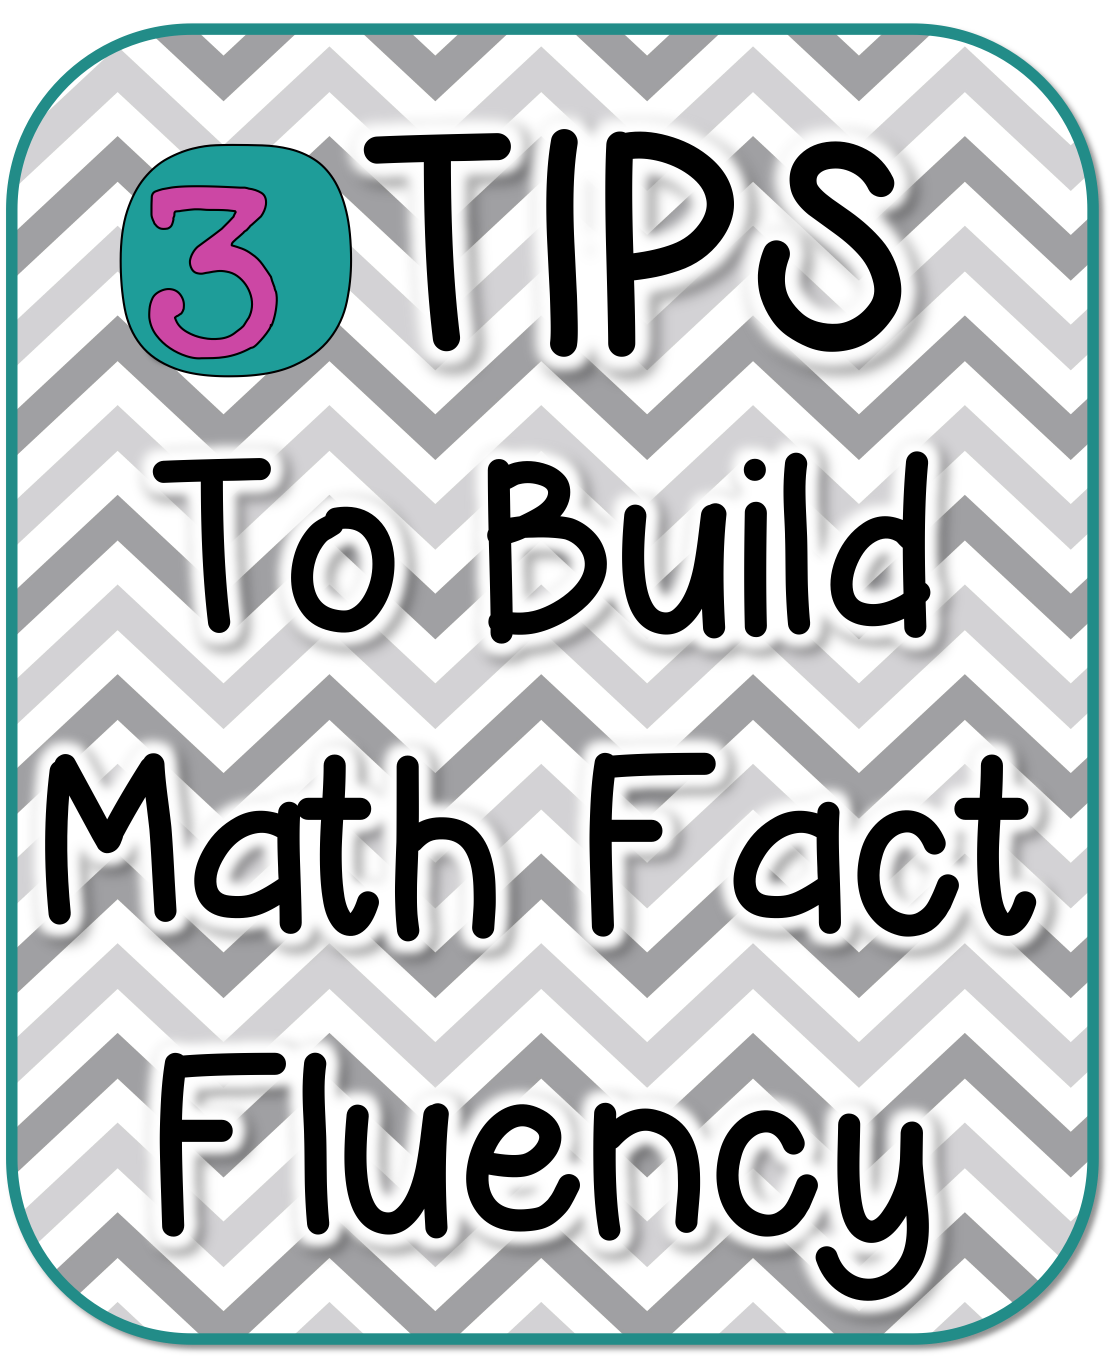 3 Tips To Build Math Fact Fluency